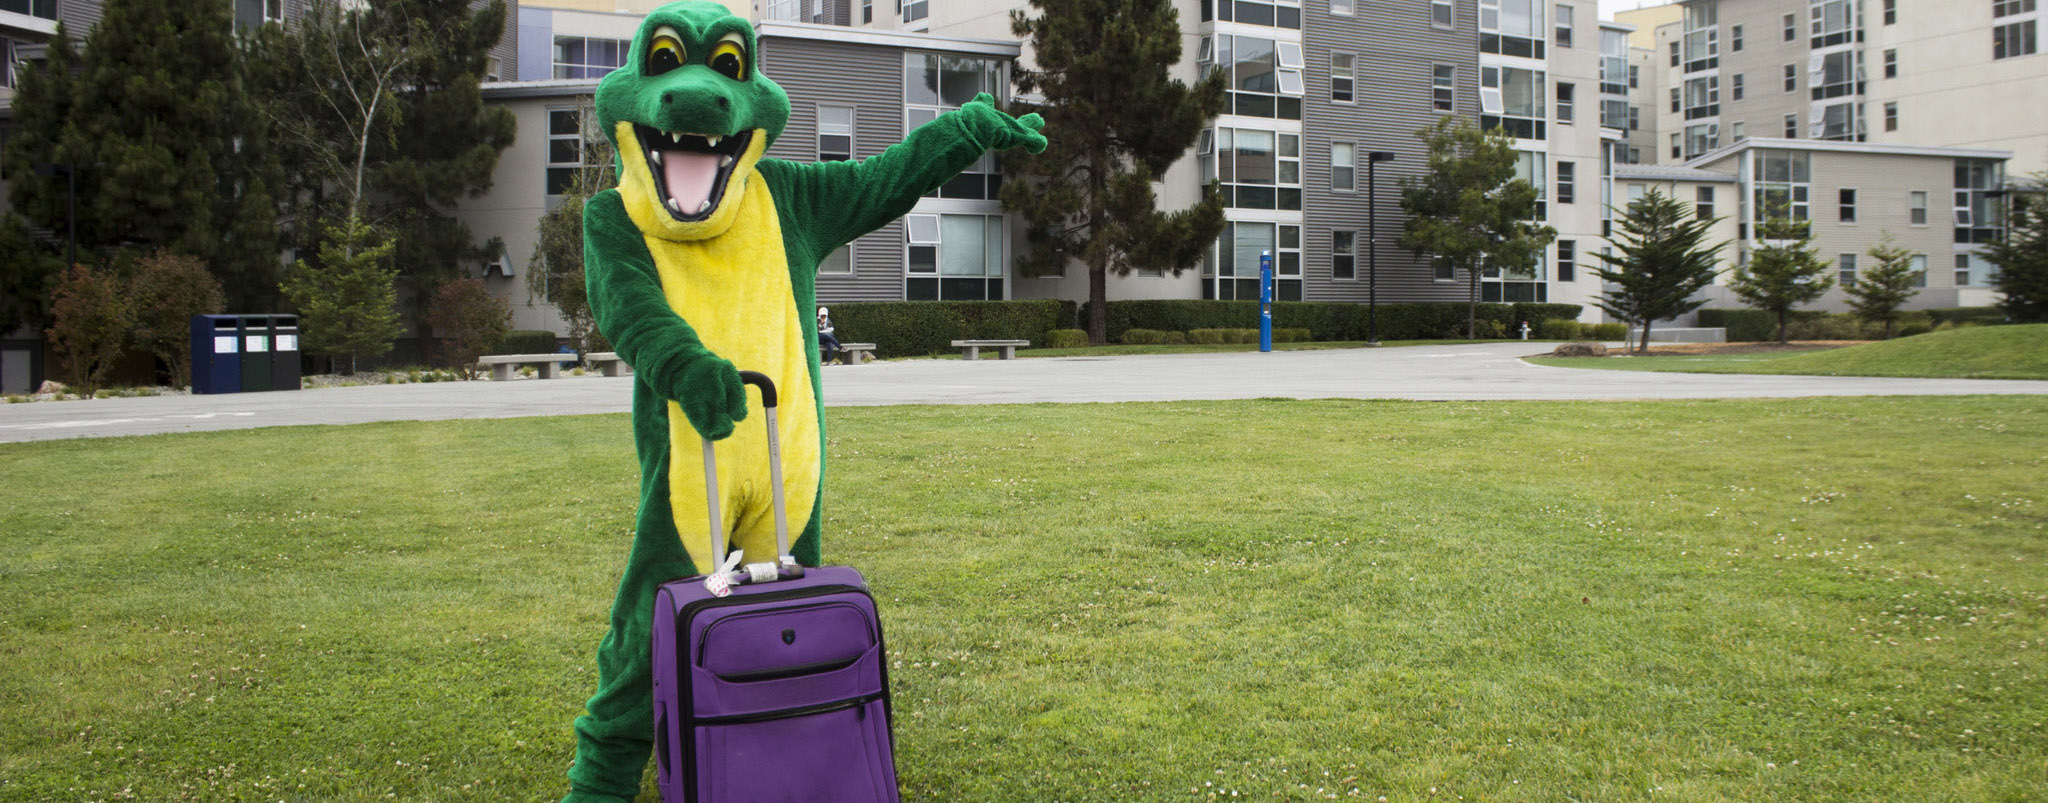 Gator mascot with Suitcase